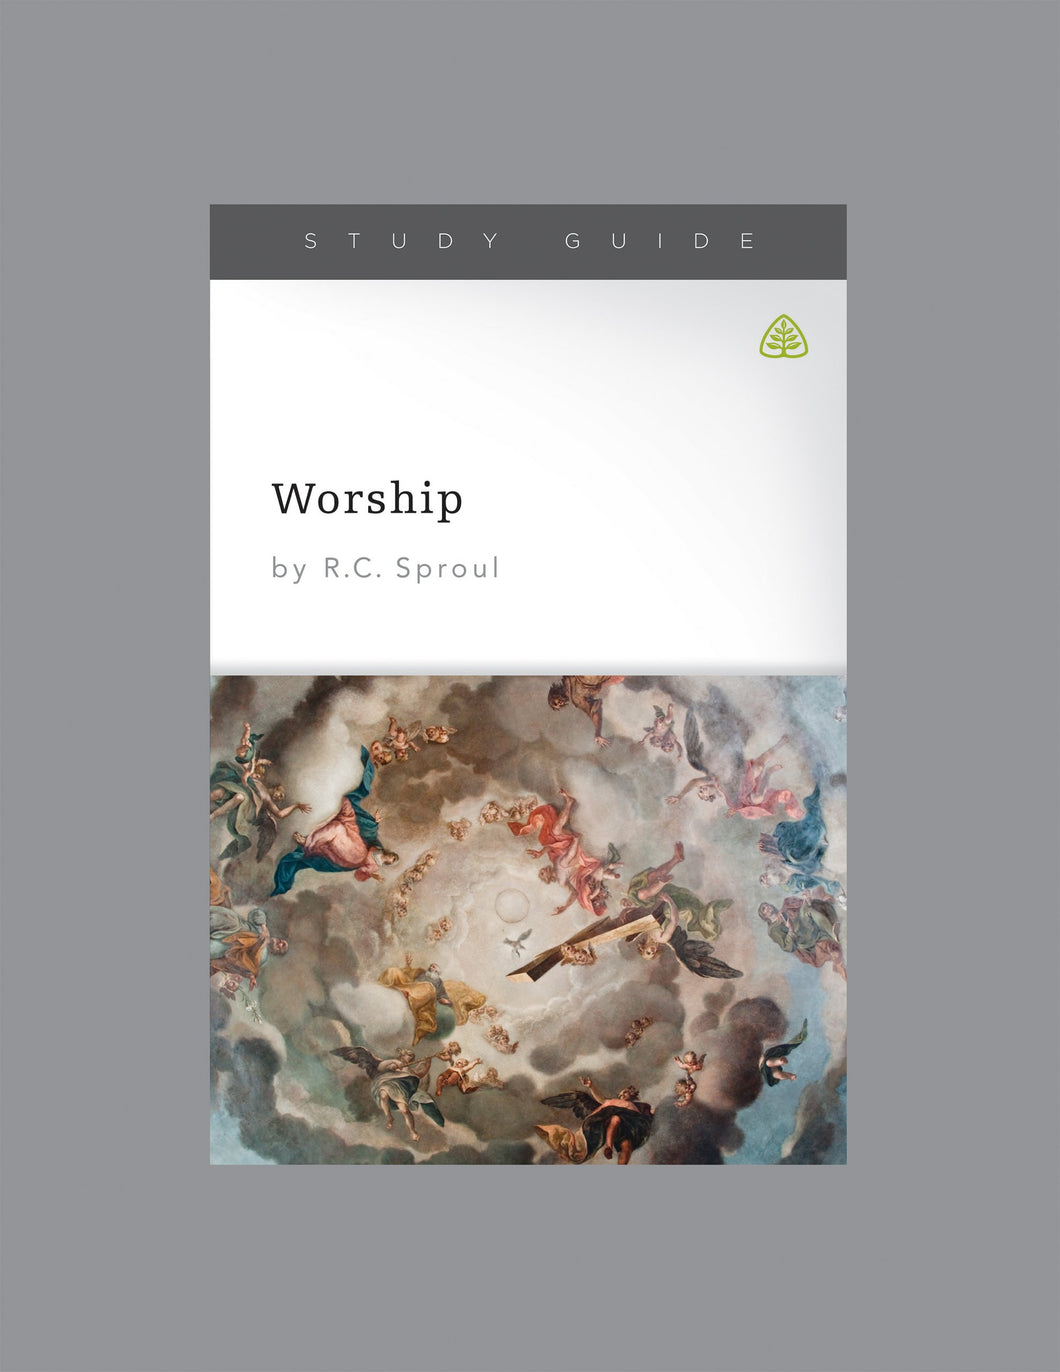 Worship — Download Study Guide PDF (1 License)